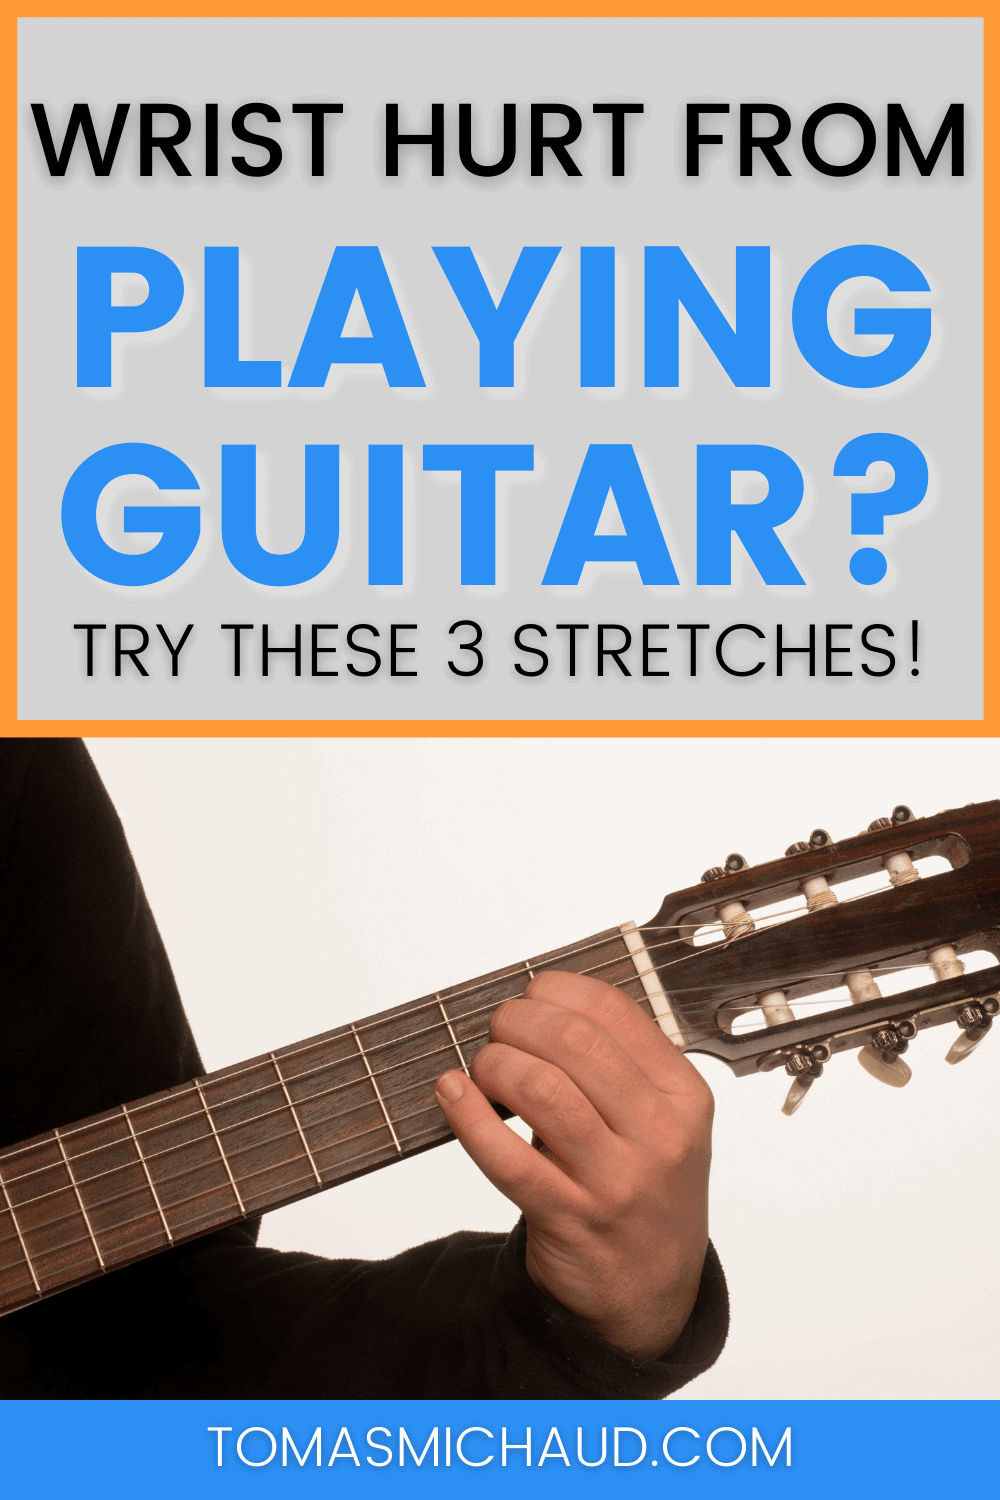 Wrist Hurt From Playing Guitar? Try These 3 Stretches!